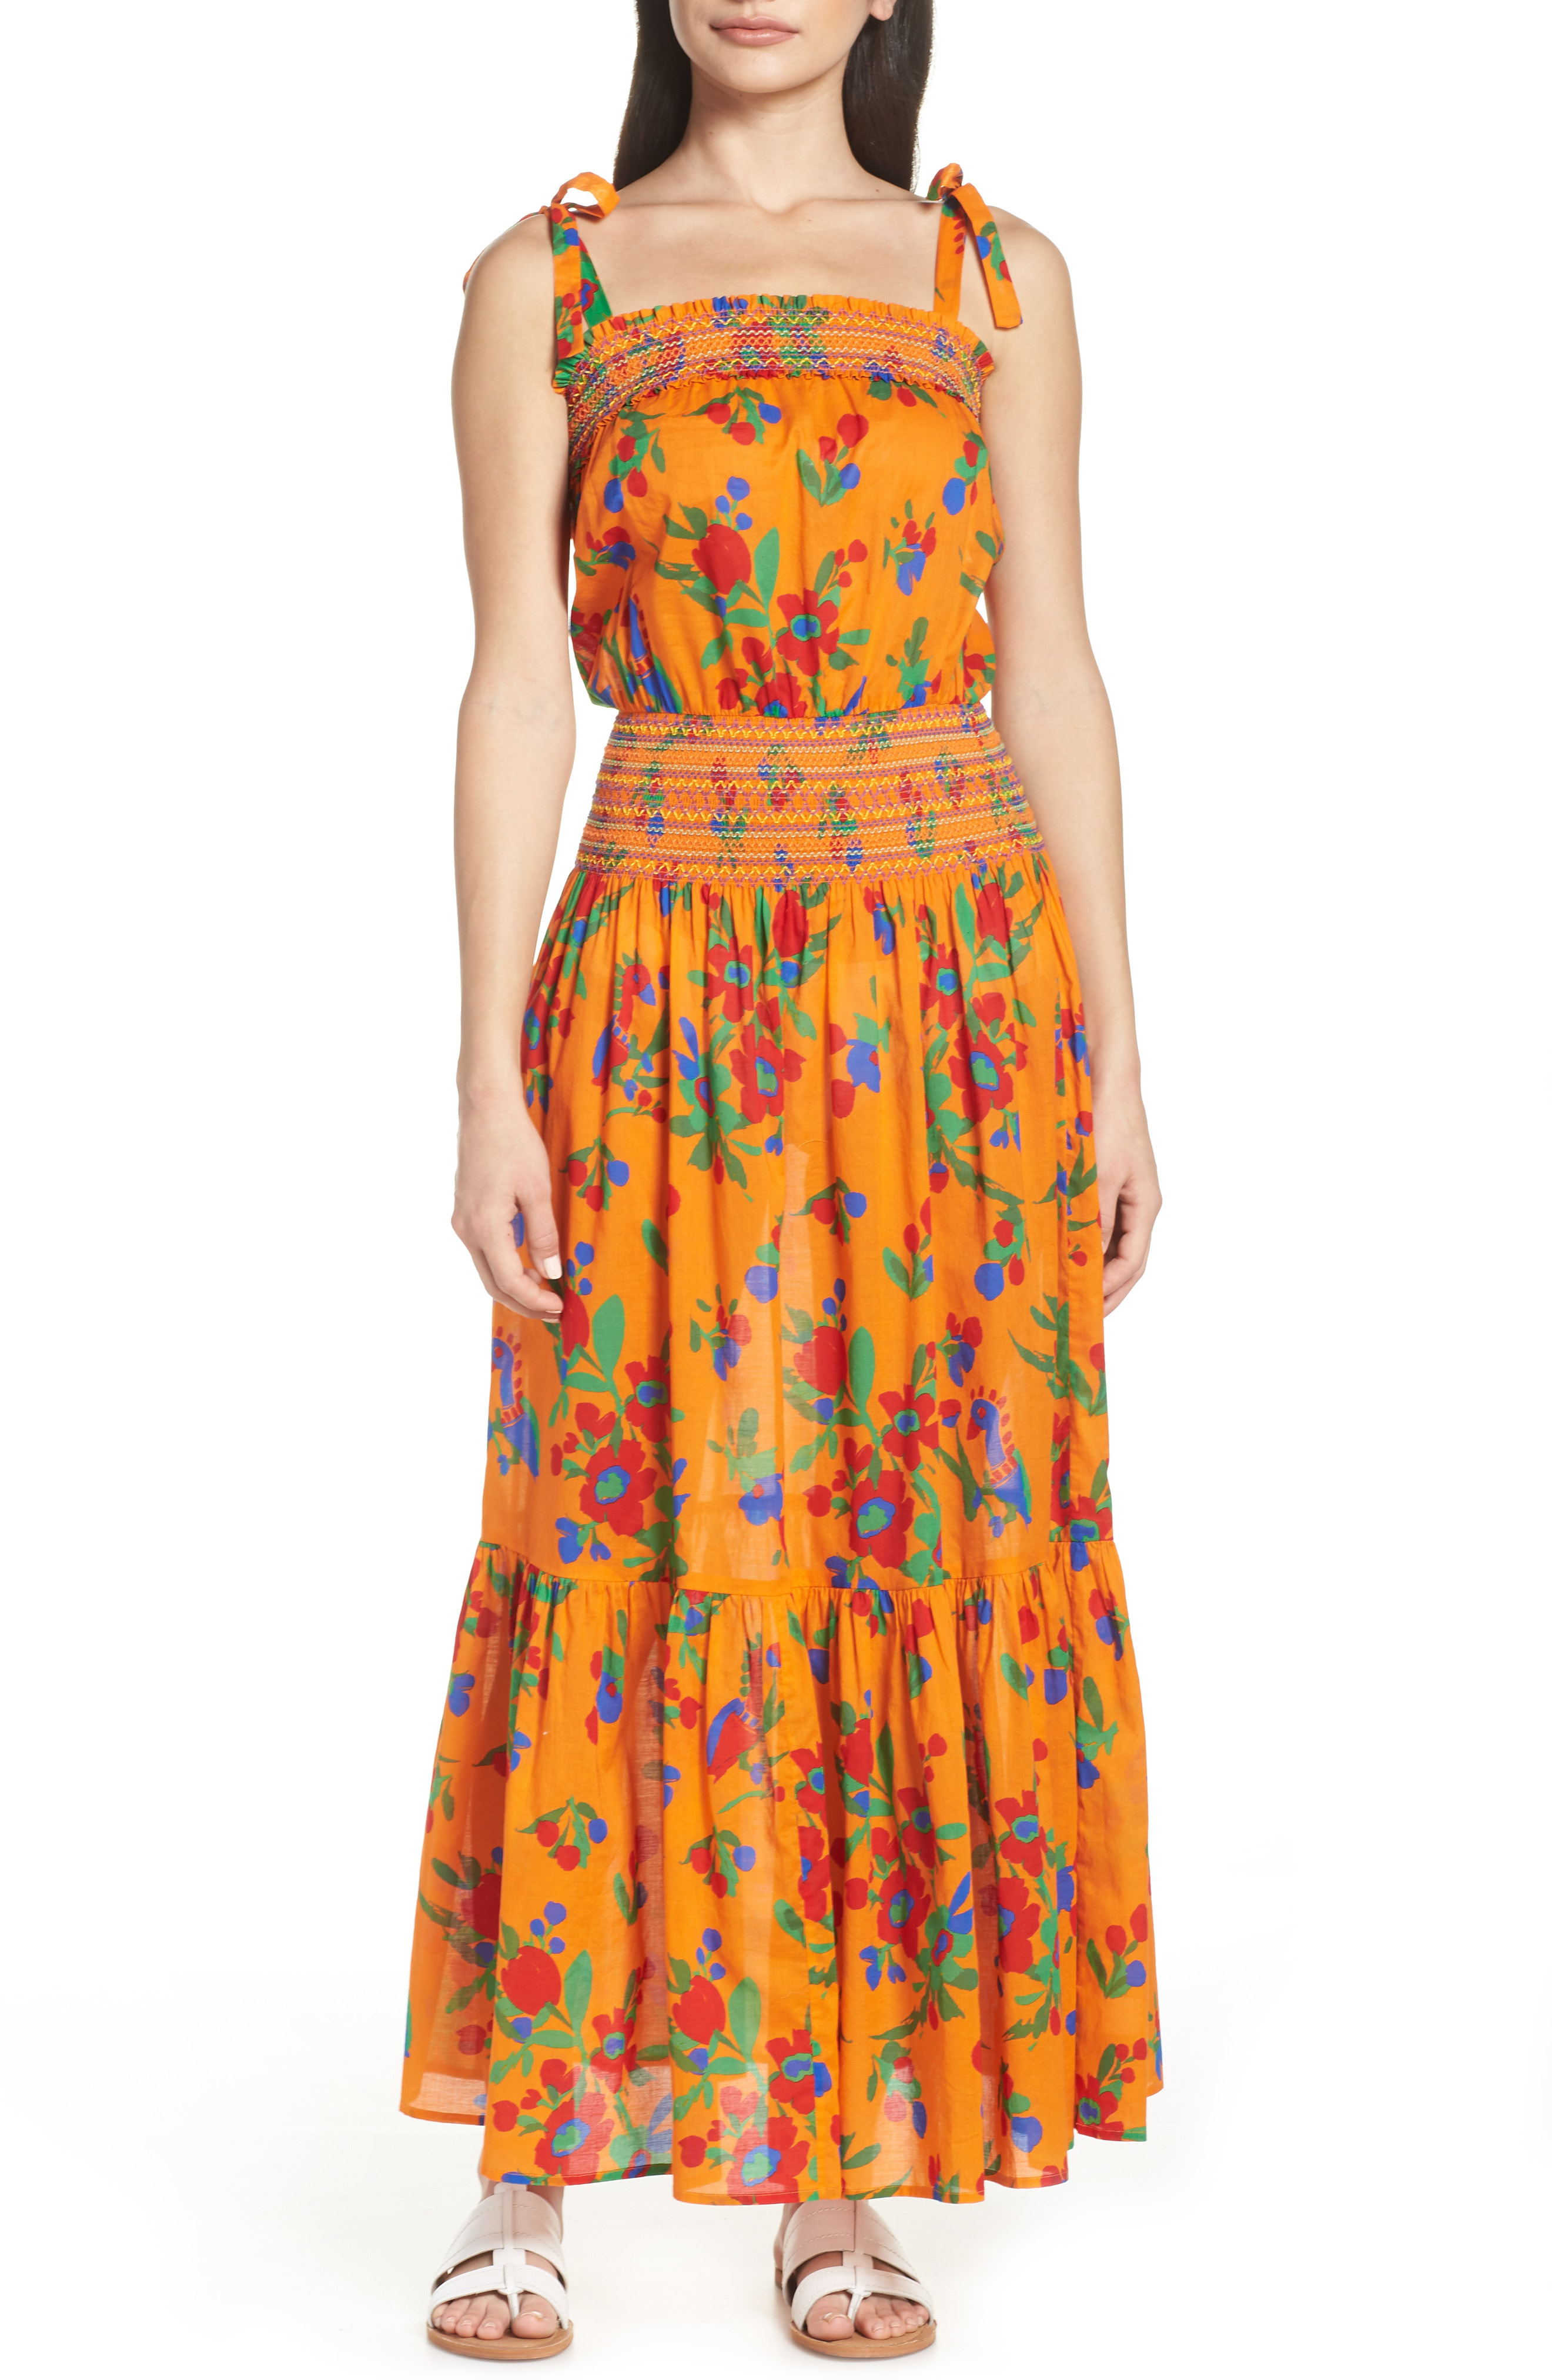 20a63b32b4eb Tory Burch Floral-Print Smocked Cotton Maxi Dress In Toucan Floral ...